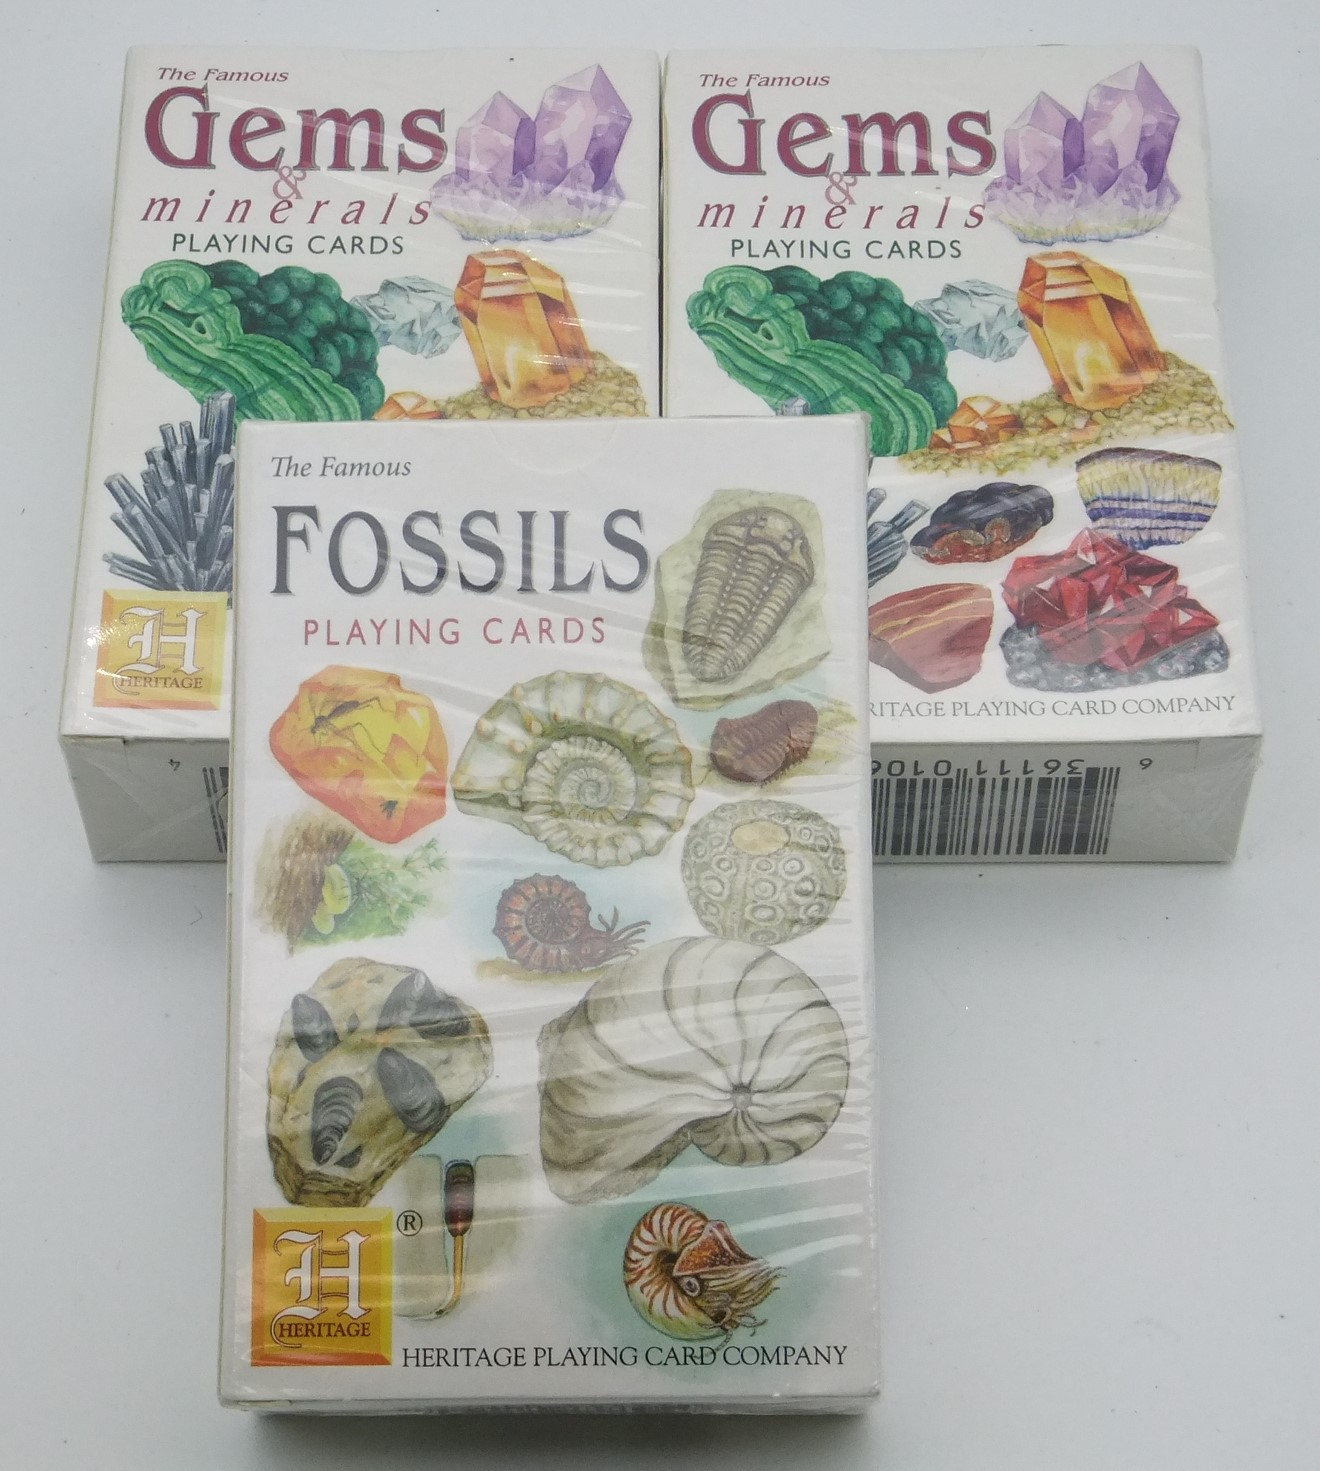 Gems & Minerals and Fossils Playing Cards